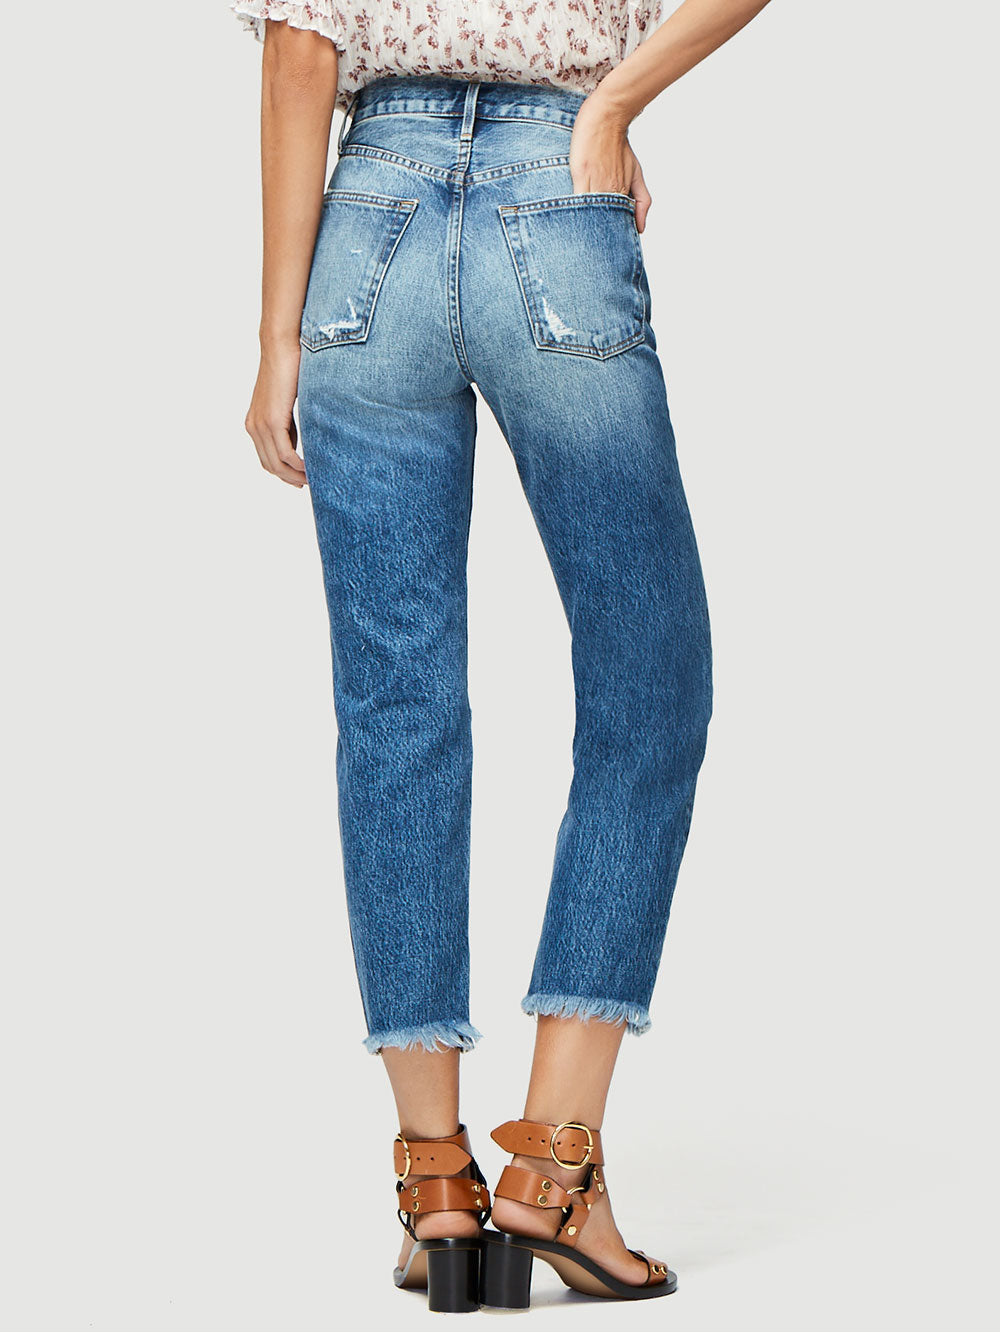 c93dd265a621 Style Runs Small – Recommend Ordering One Size Up. Vintage Inspired, This  High-Rise Jean Is A Cult Favorite. Crafted From Premium Non-Stretch Denim,  ...